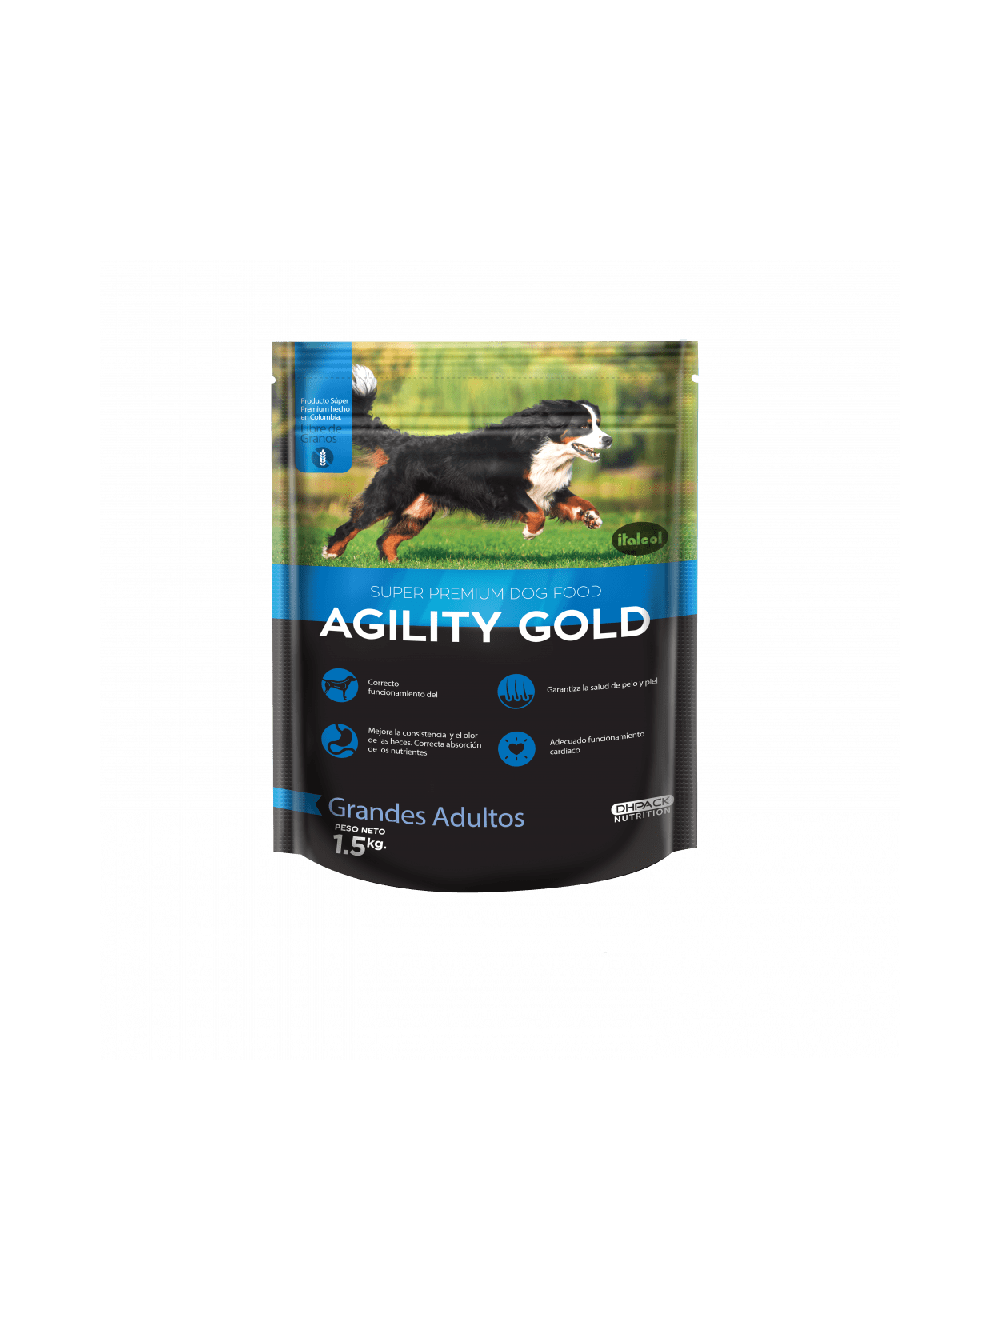 Agility Gold Grandes Adultos Combo 1.5Kg x 5 Und